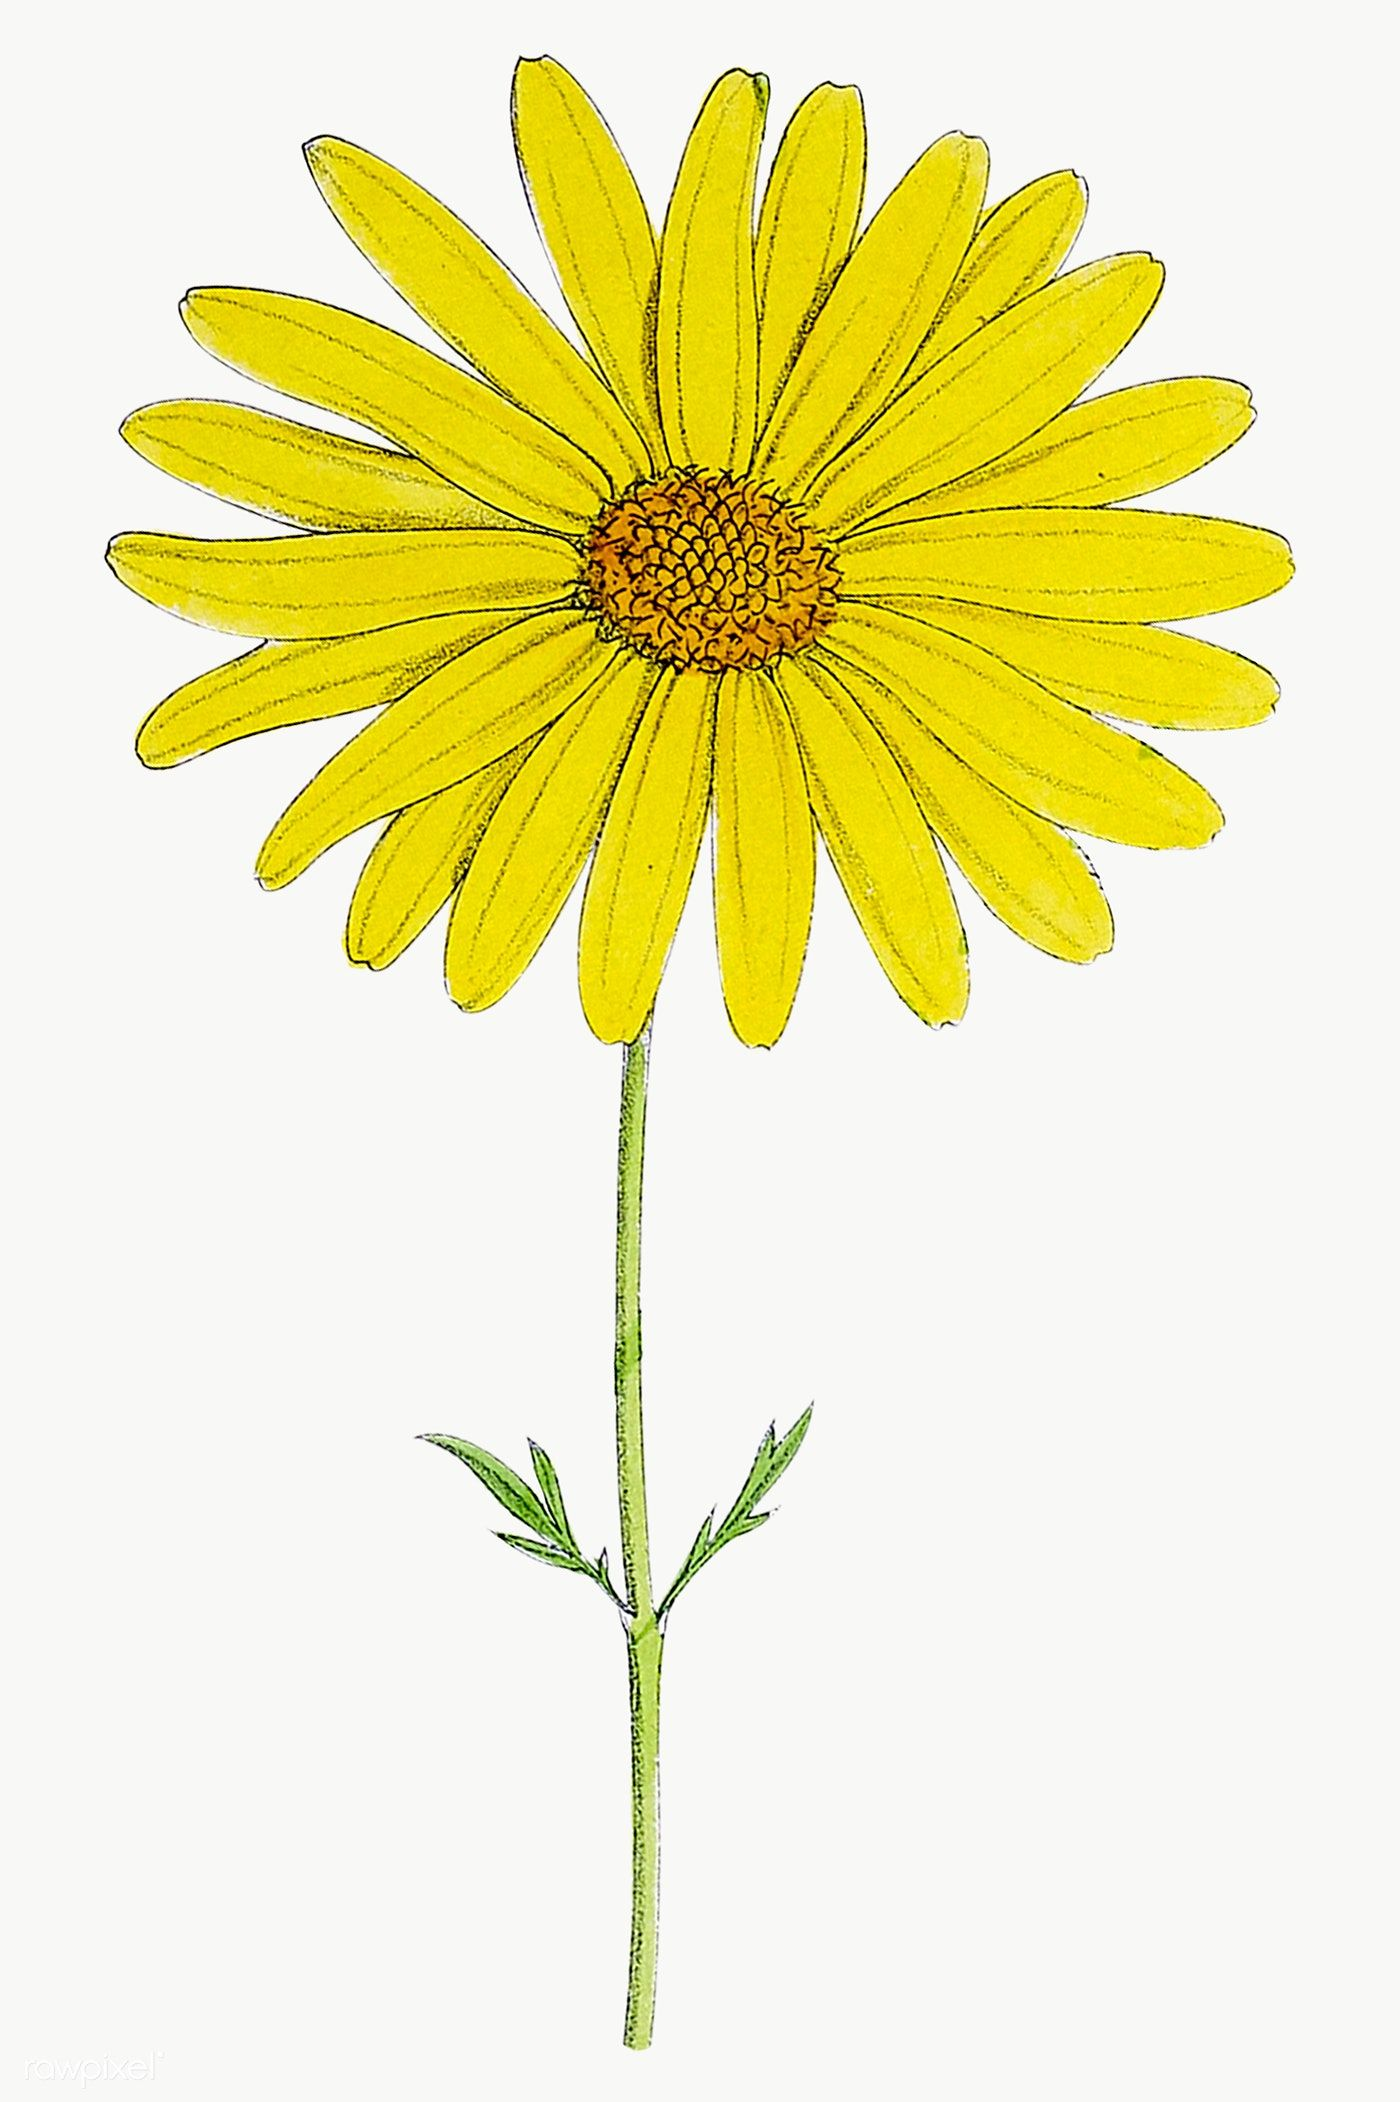 Download Premium Png Of Hand Drawn Yellow Flower Transparent Png 2094599 In 2020 Yellow Flowers Yellow Daisy Flower Flower Illustration